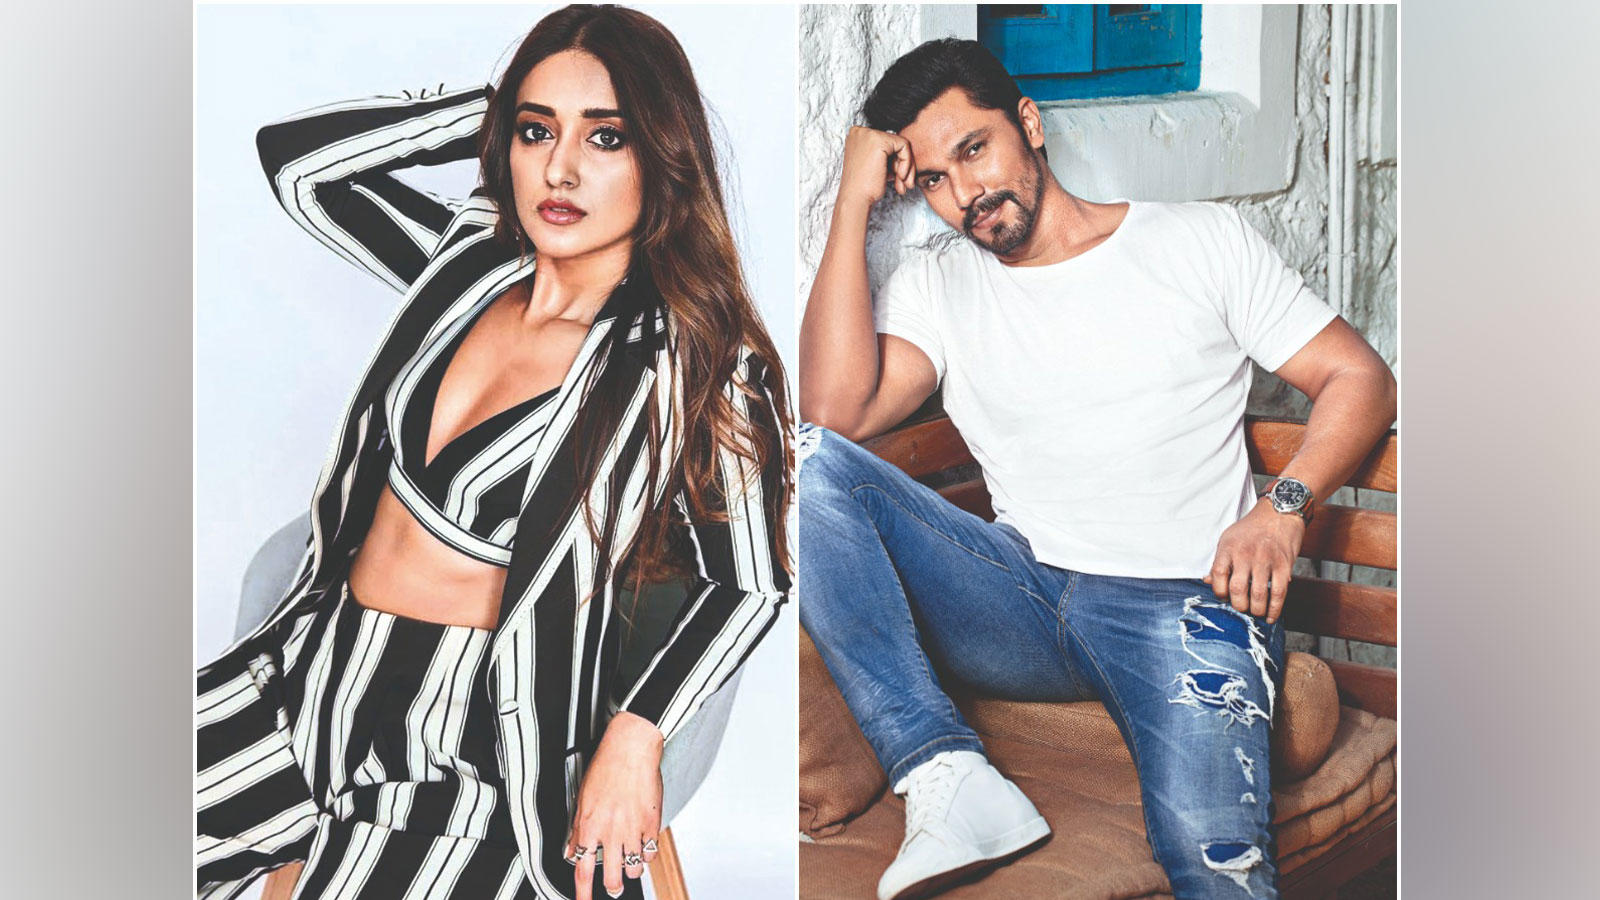 ileana-dcruz-reveals-that-randeep-hooda-taught-her-haryanvi-nuances-for-unfair-lovely